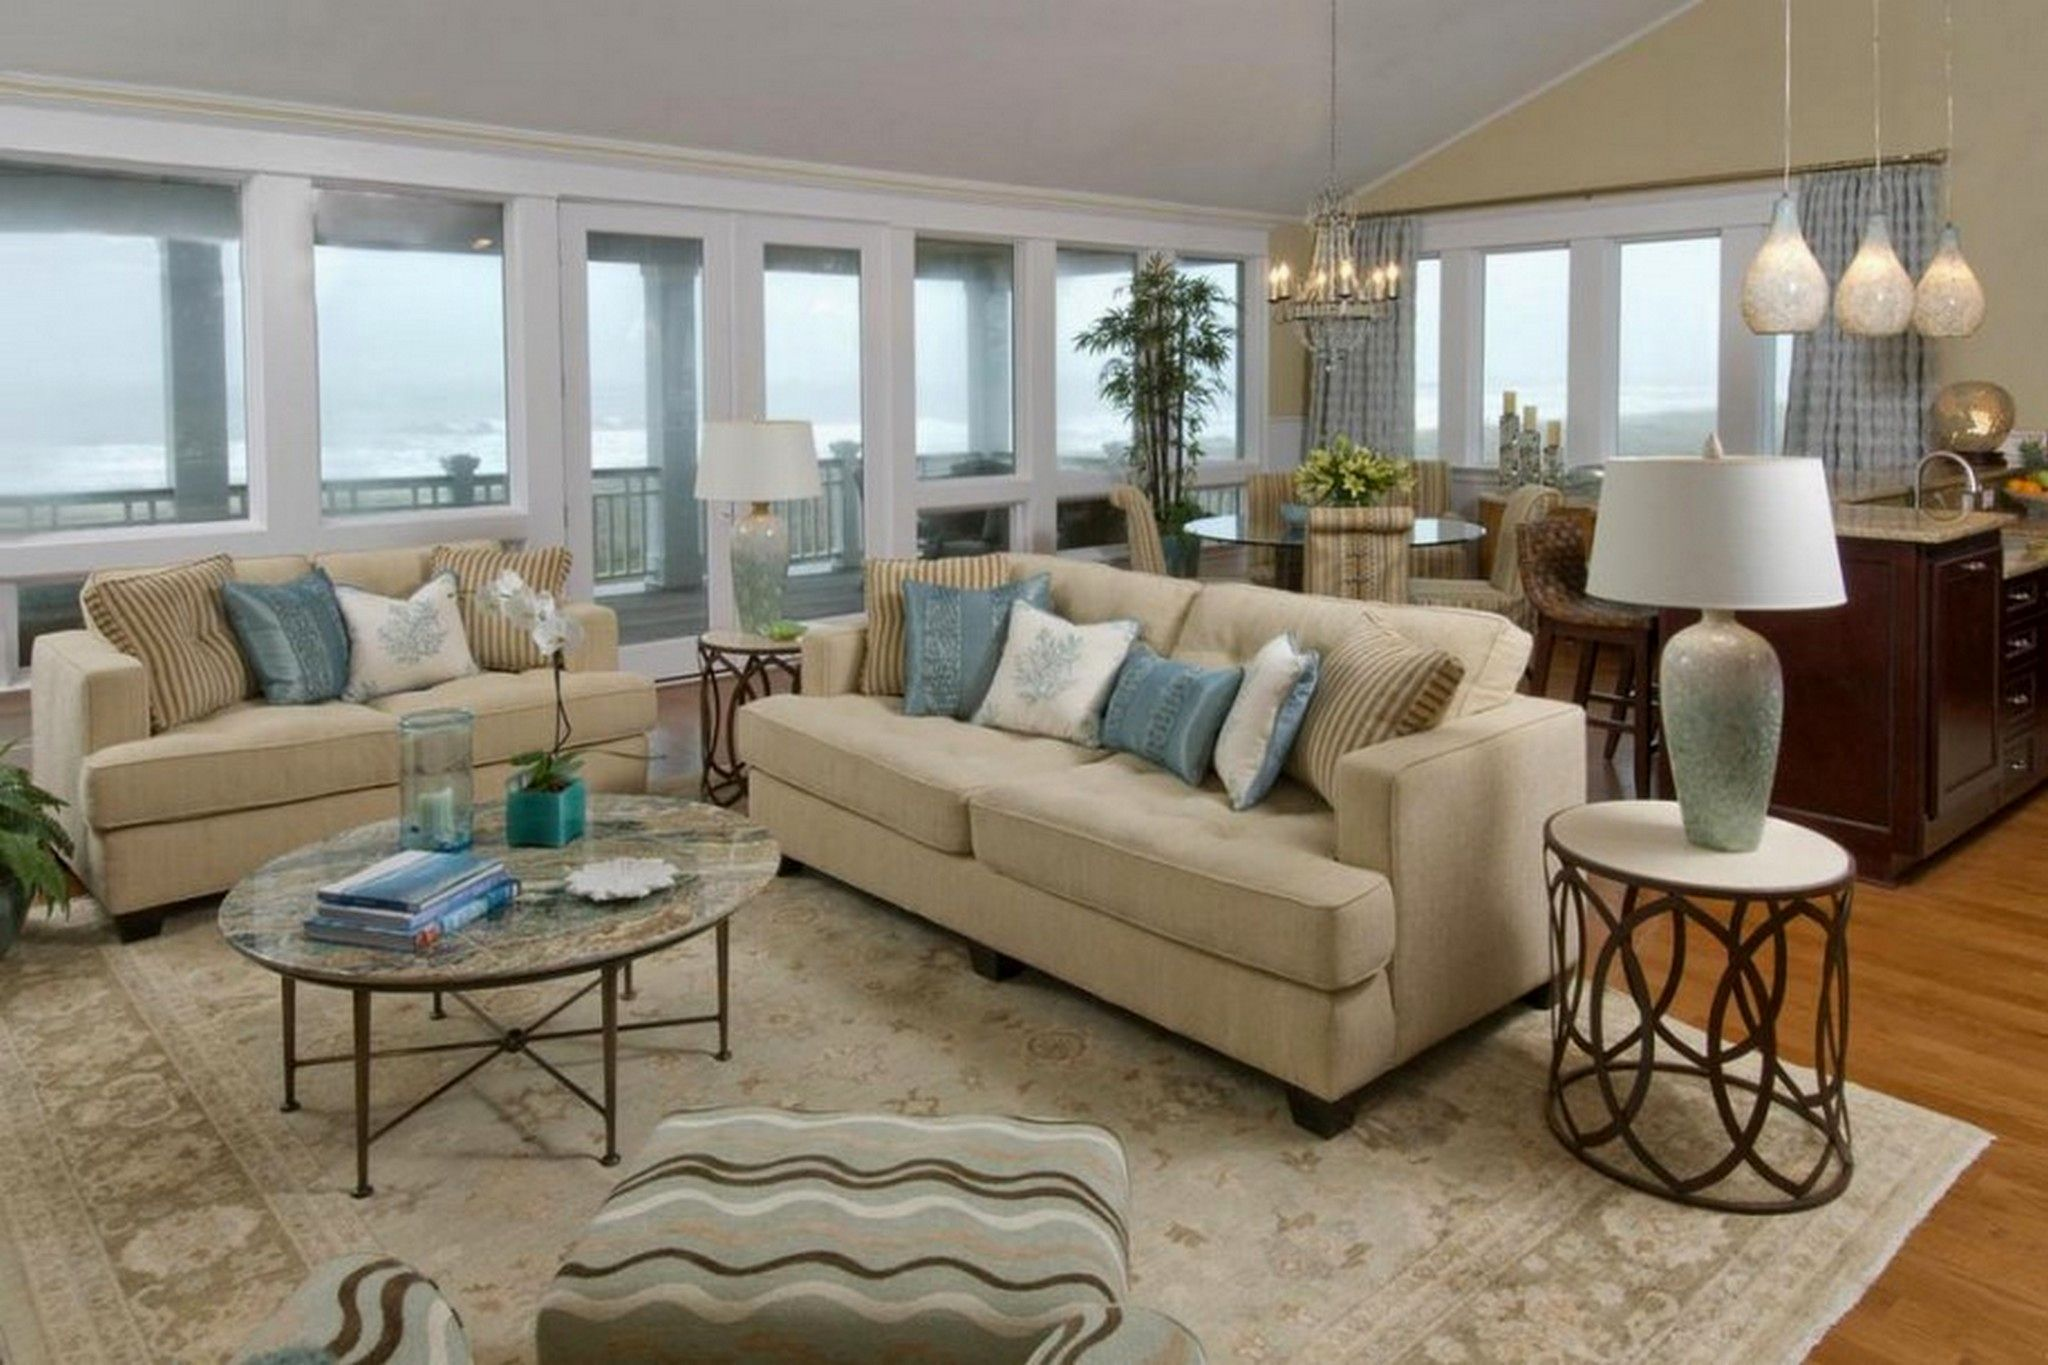 Top Beach Themed Living Rooms Room With Sea And Theme Ideas Home Decor In 2020 Beach Living Room Beach Theme Living Room Beach House Living Room #sea #themed #living #room